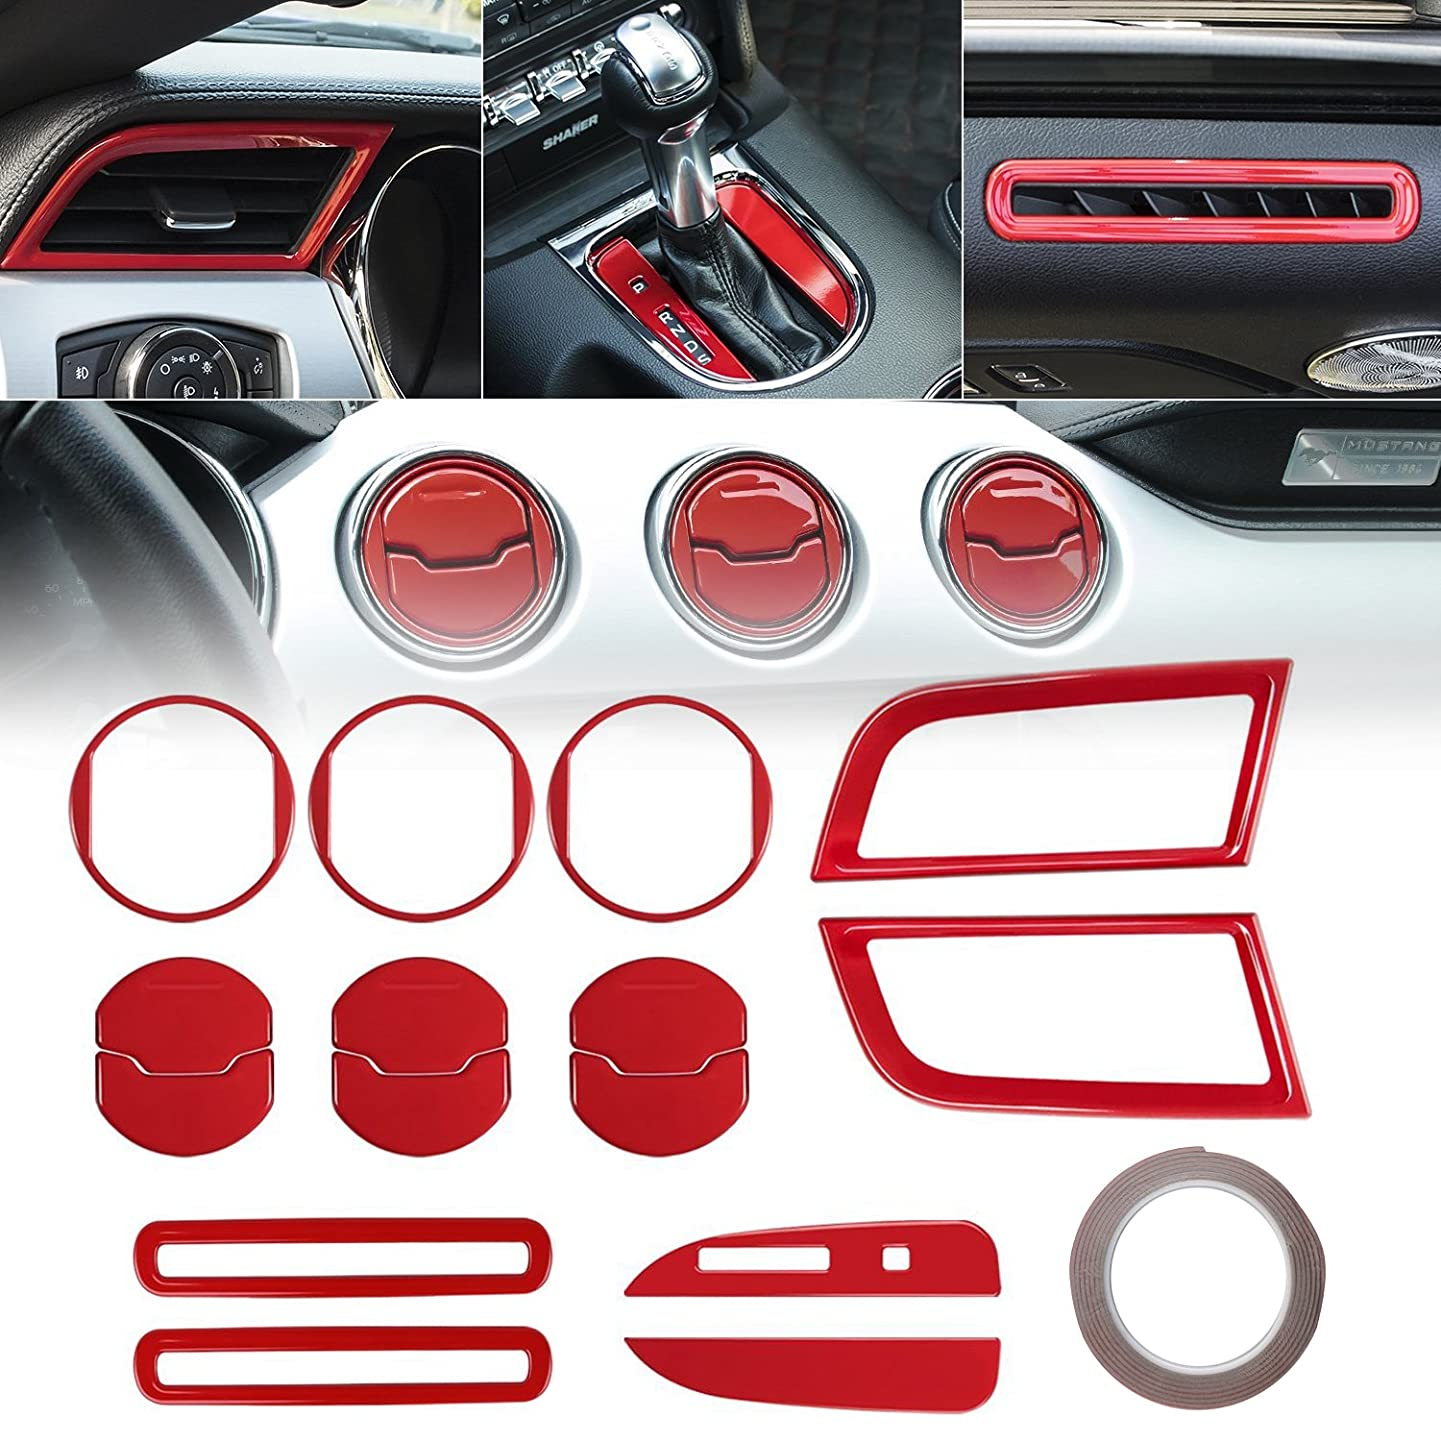 2015 2016 2017 2018 Ford Mustang Interior 15 PCS Accessories Decoration Set Console Central, Door, Dash Board Side Air Conditioner Outlet Vent, Chrome Shift Gear Box Switch Button Cover Trim (Red)